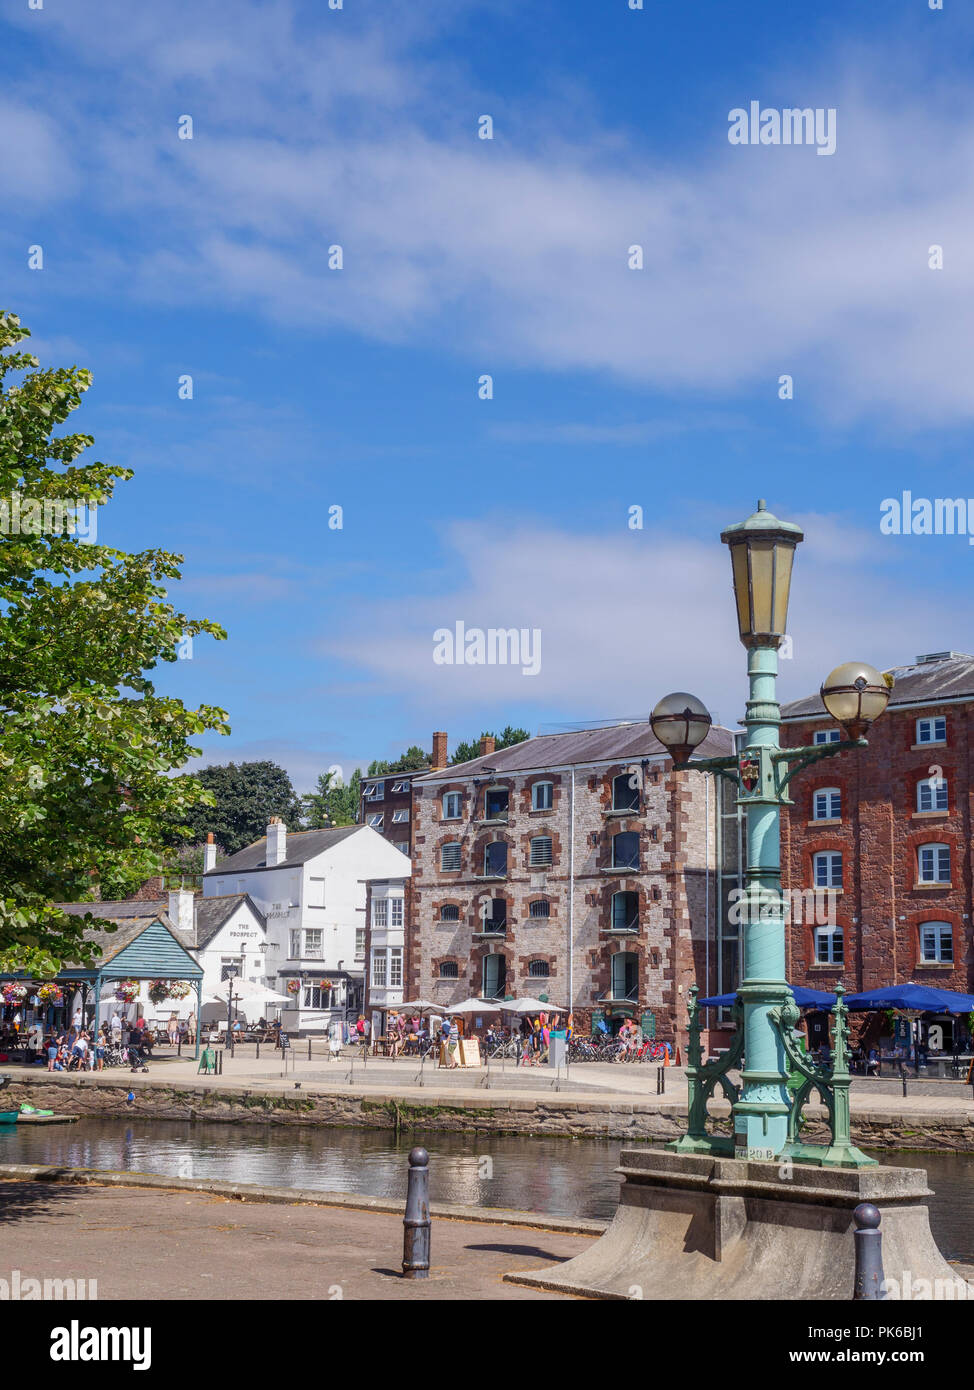 Old bonded warehouses now craft shops River Exe Exeter Quay Exeter Devon England - Stock Image